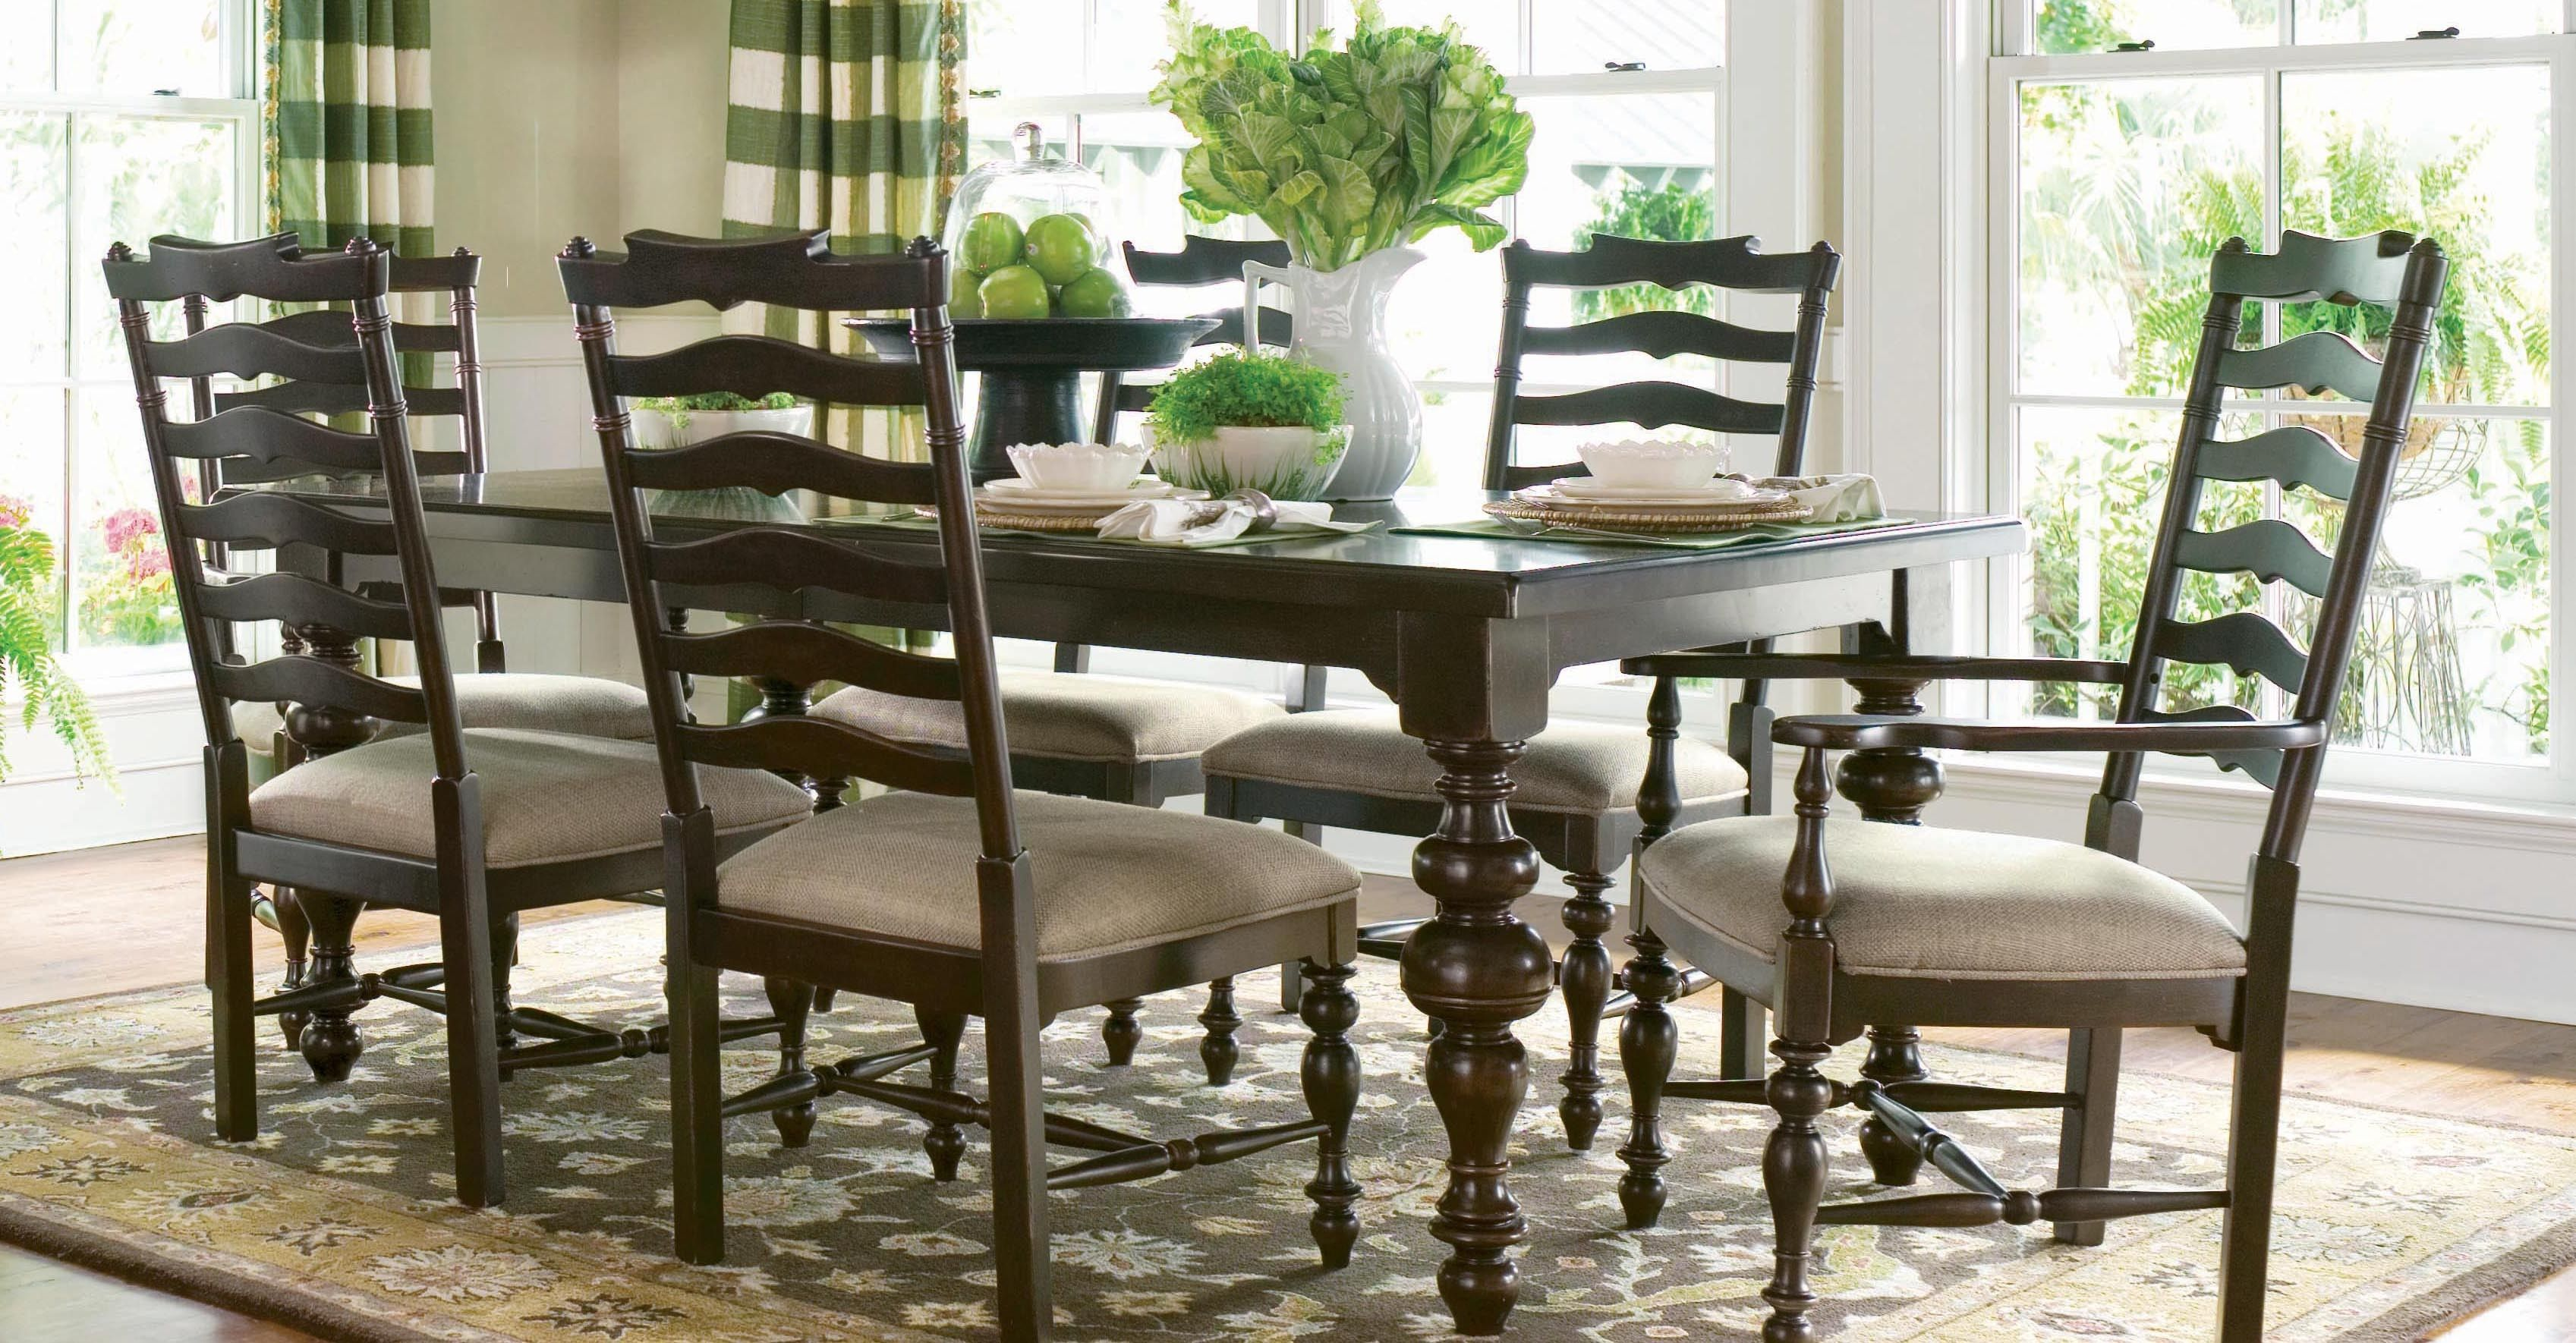 Gorgeous Dining Room Table Paula Deen Tobacco Paula S Table